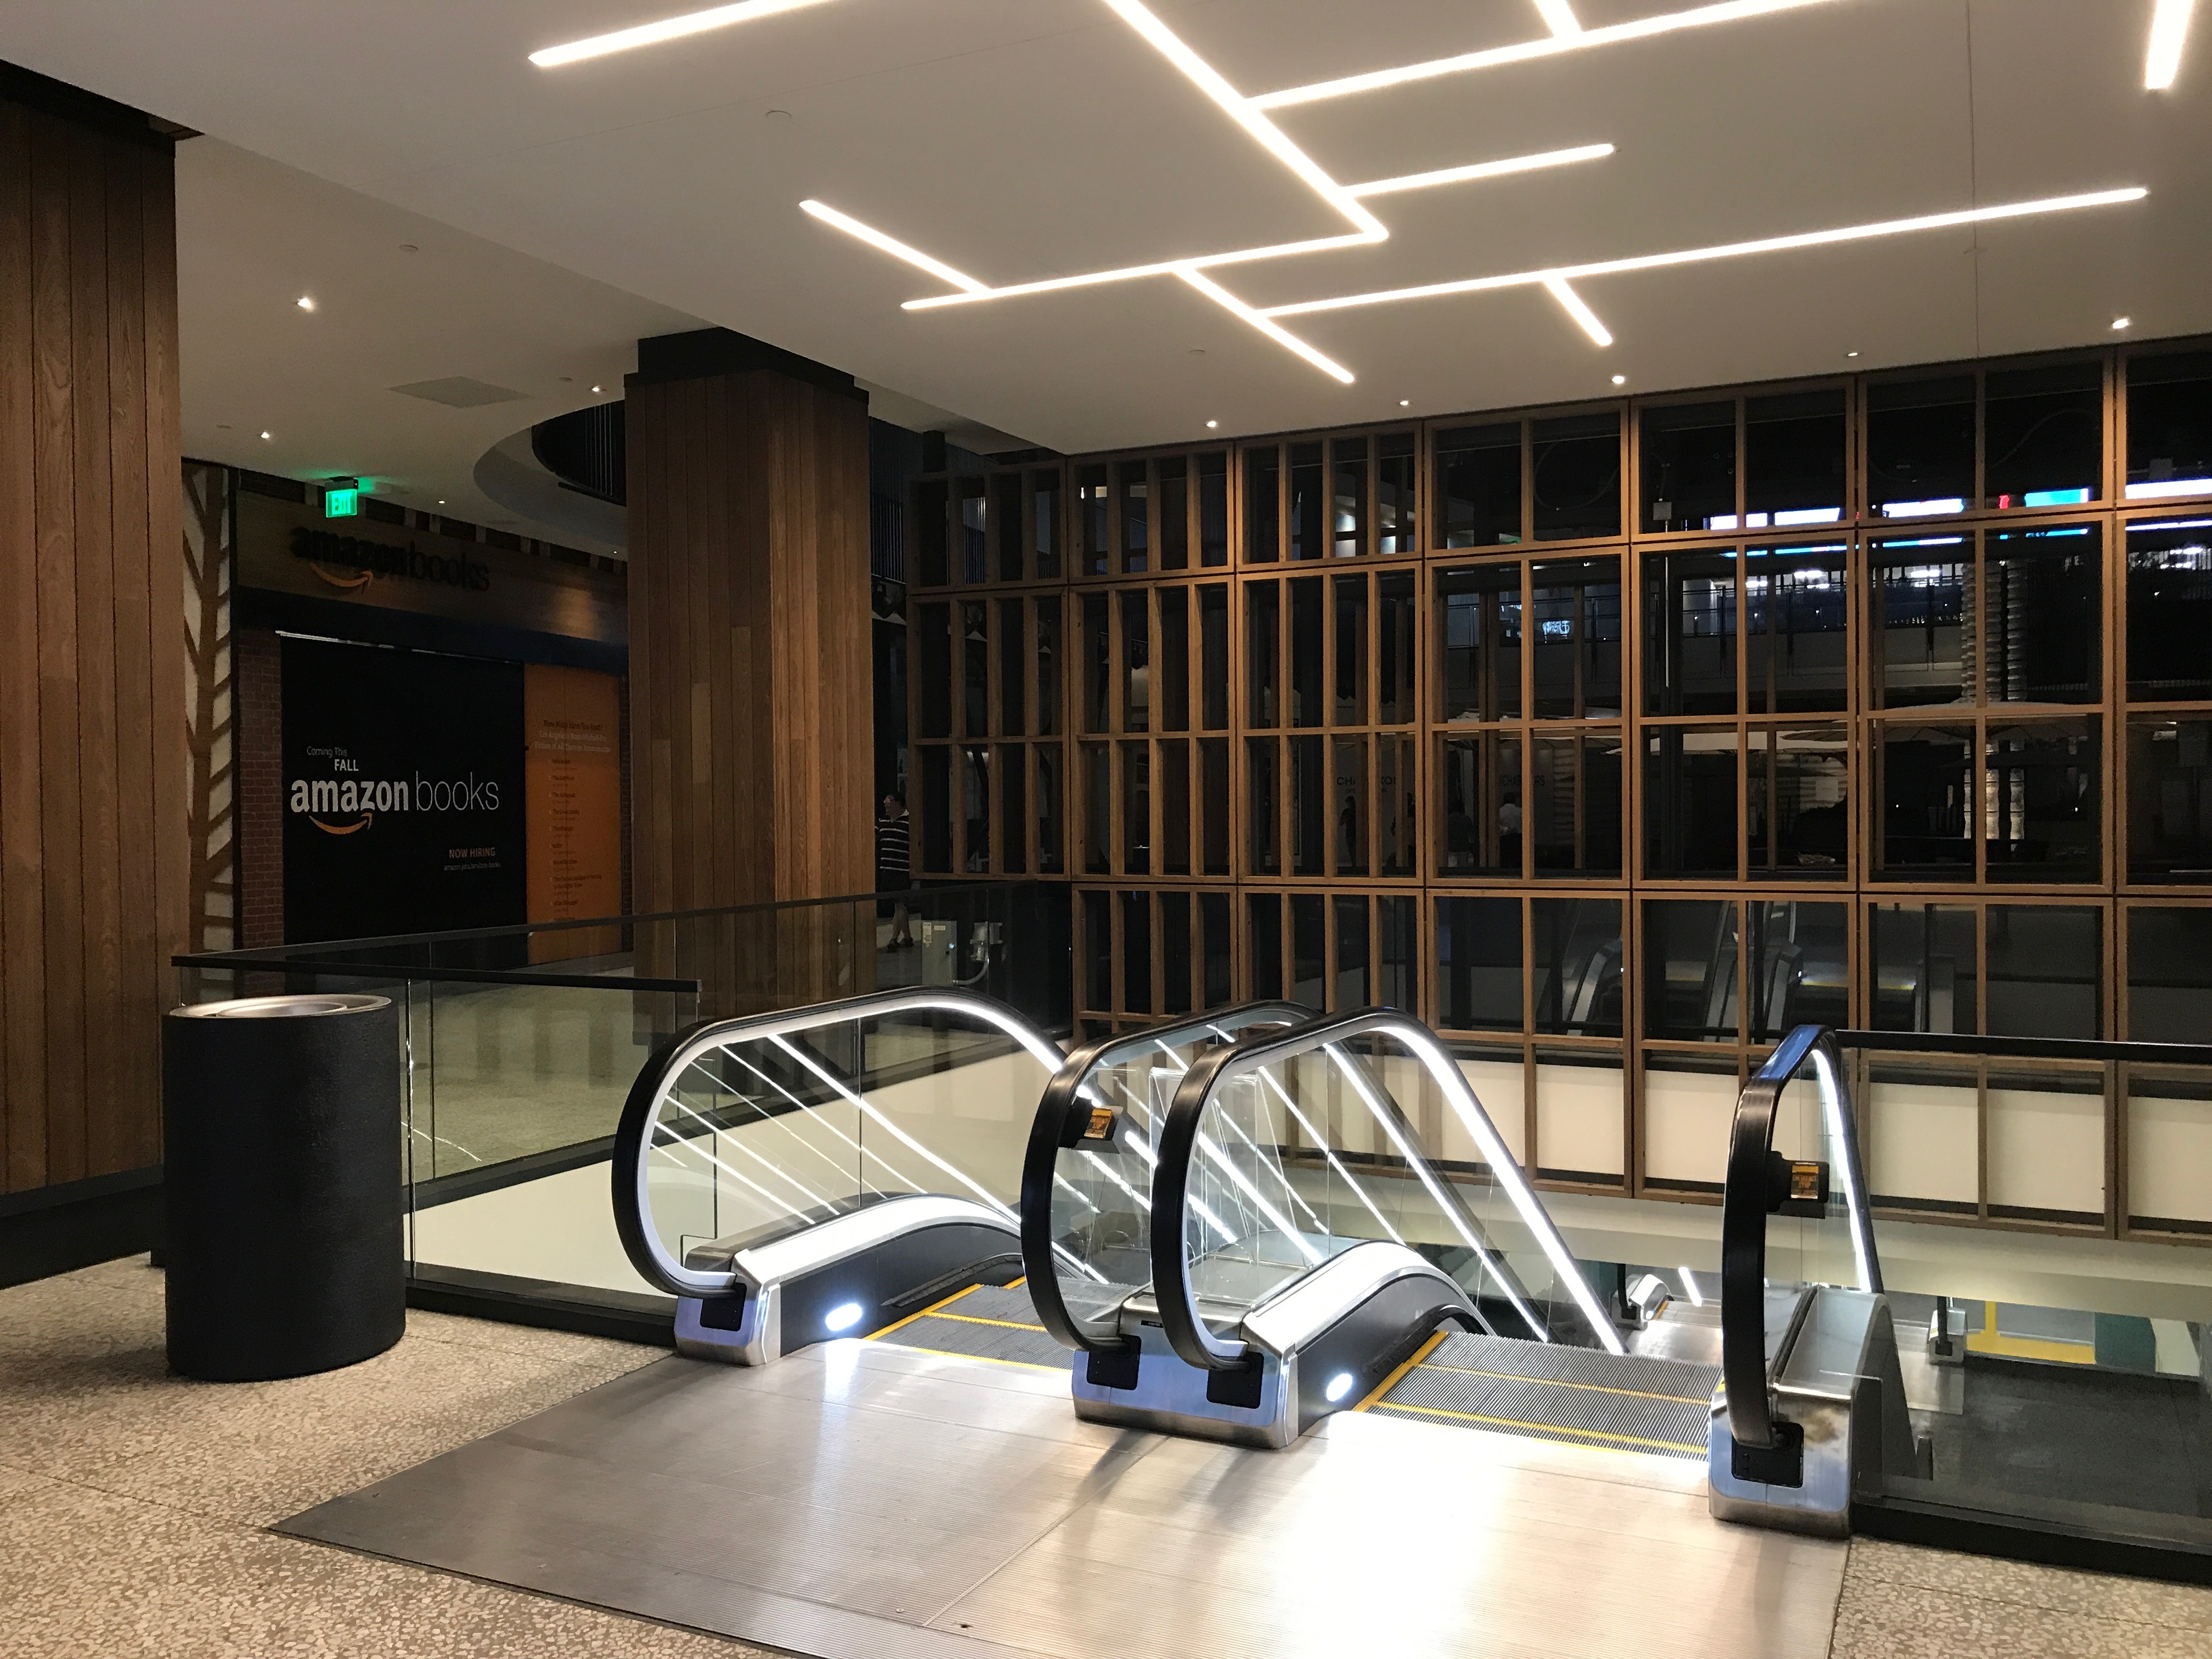 Amazon's new book store lies directly behind one of the many newly remodeled escalators.